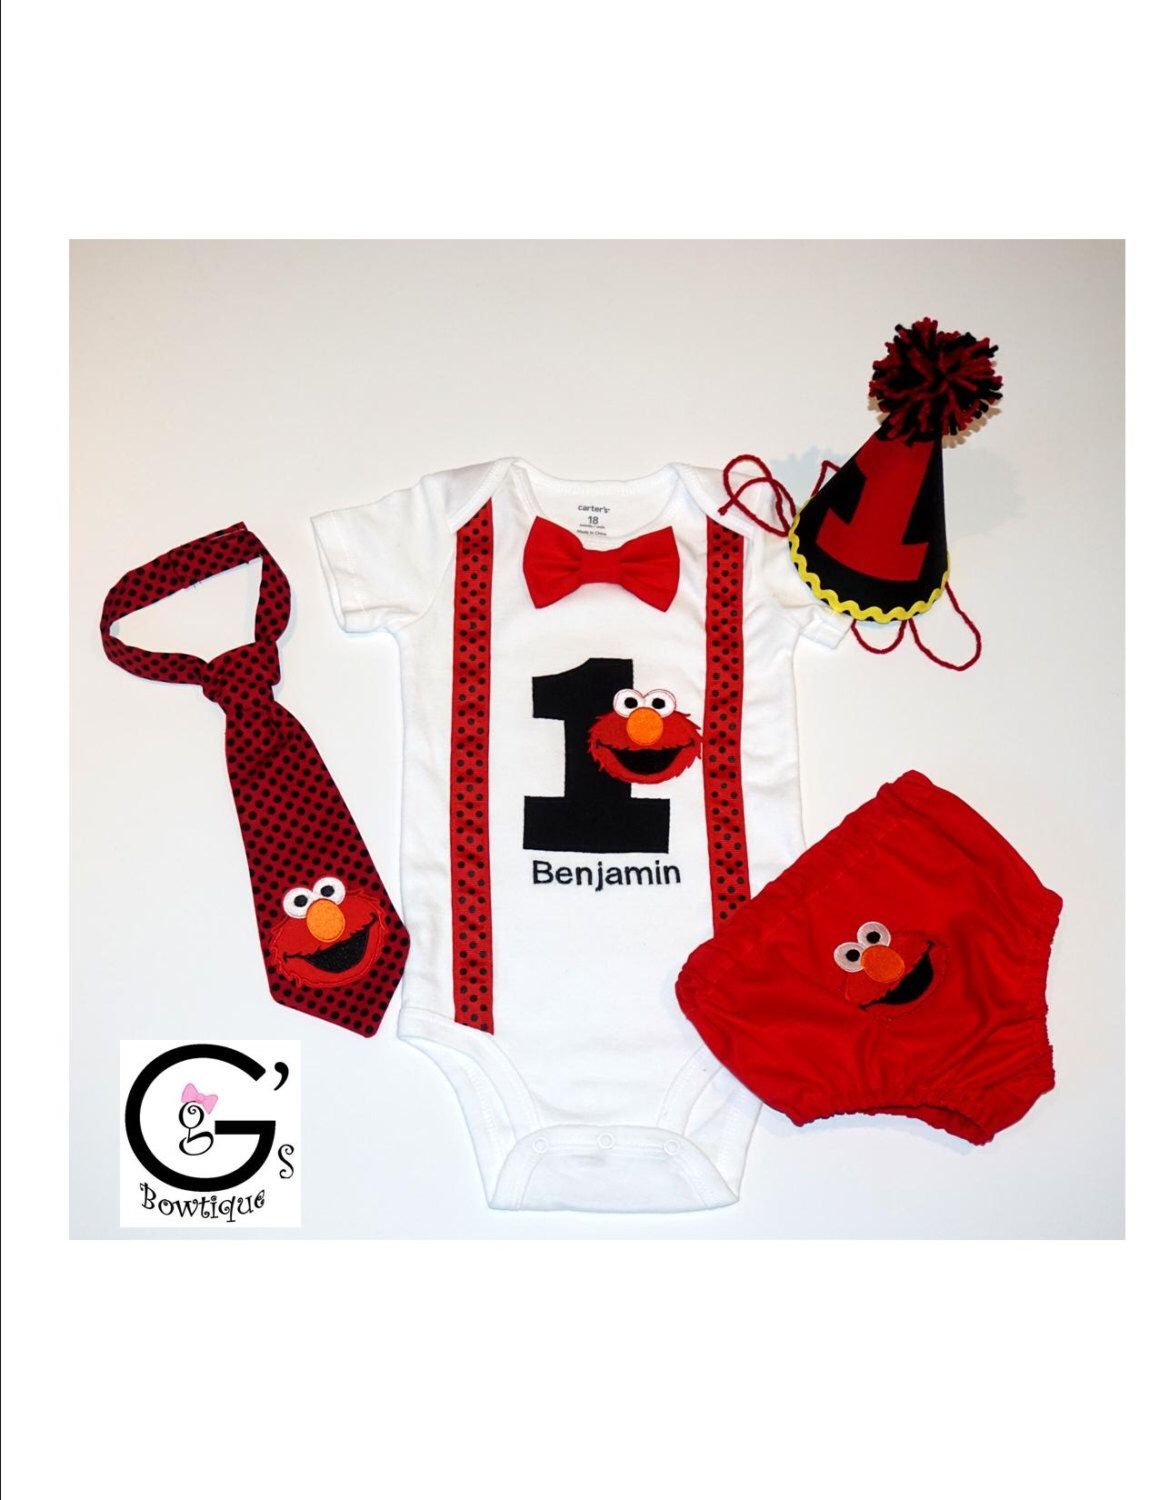 Elmo 1st birthday party ideas birthday party sesamestreet - Sesame Street Elmo 1st Birthday Smash Cake Party Outfit Bow Tie Onesie Baby Toddler Boys Shirt